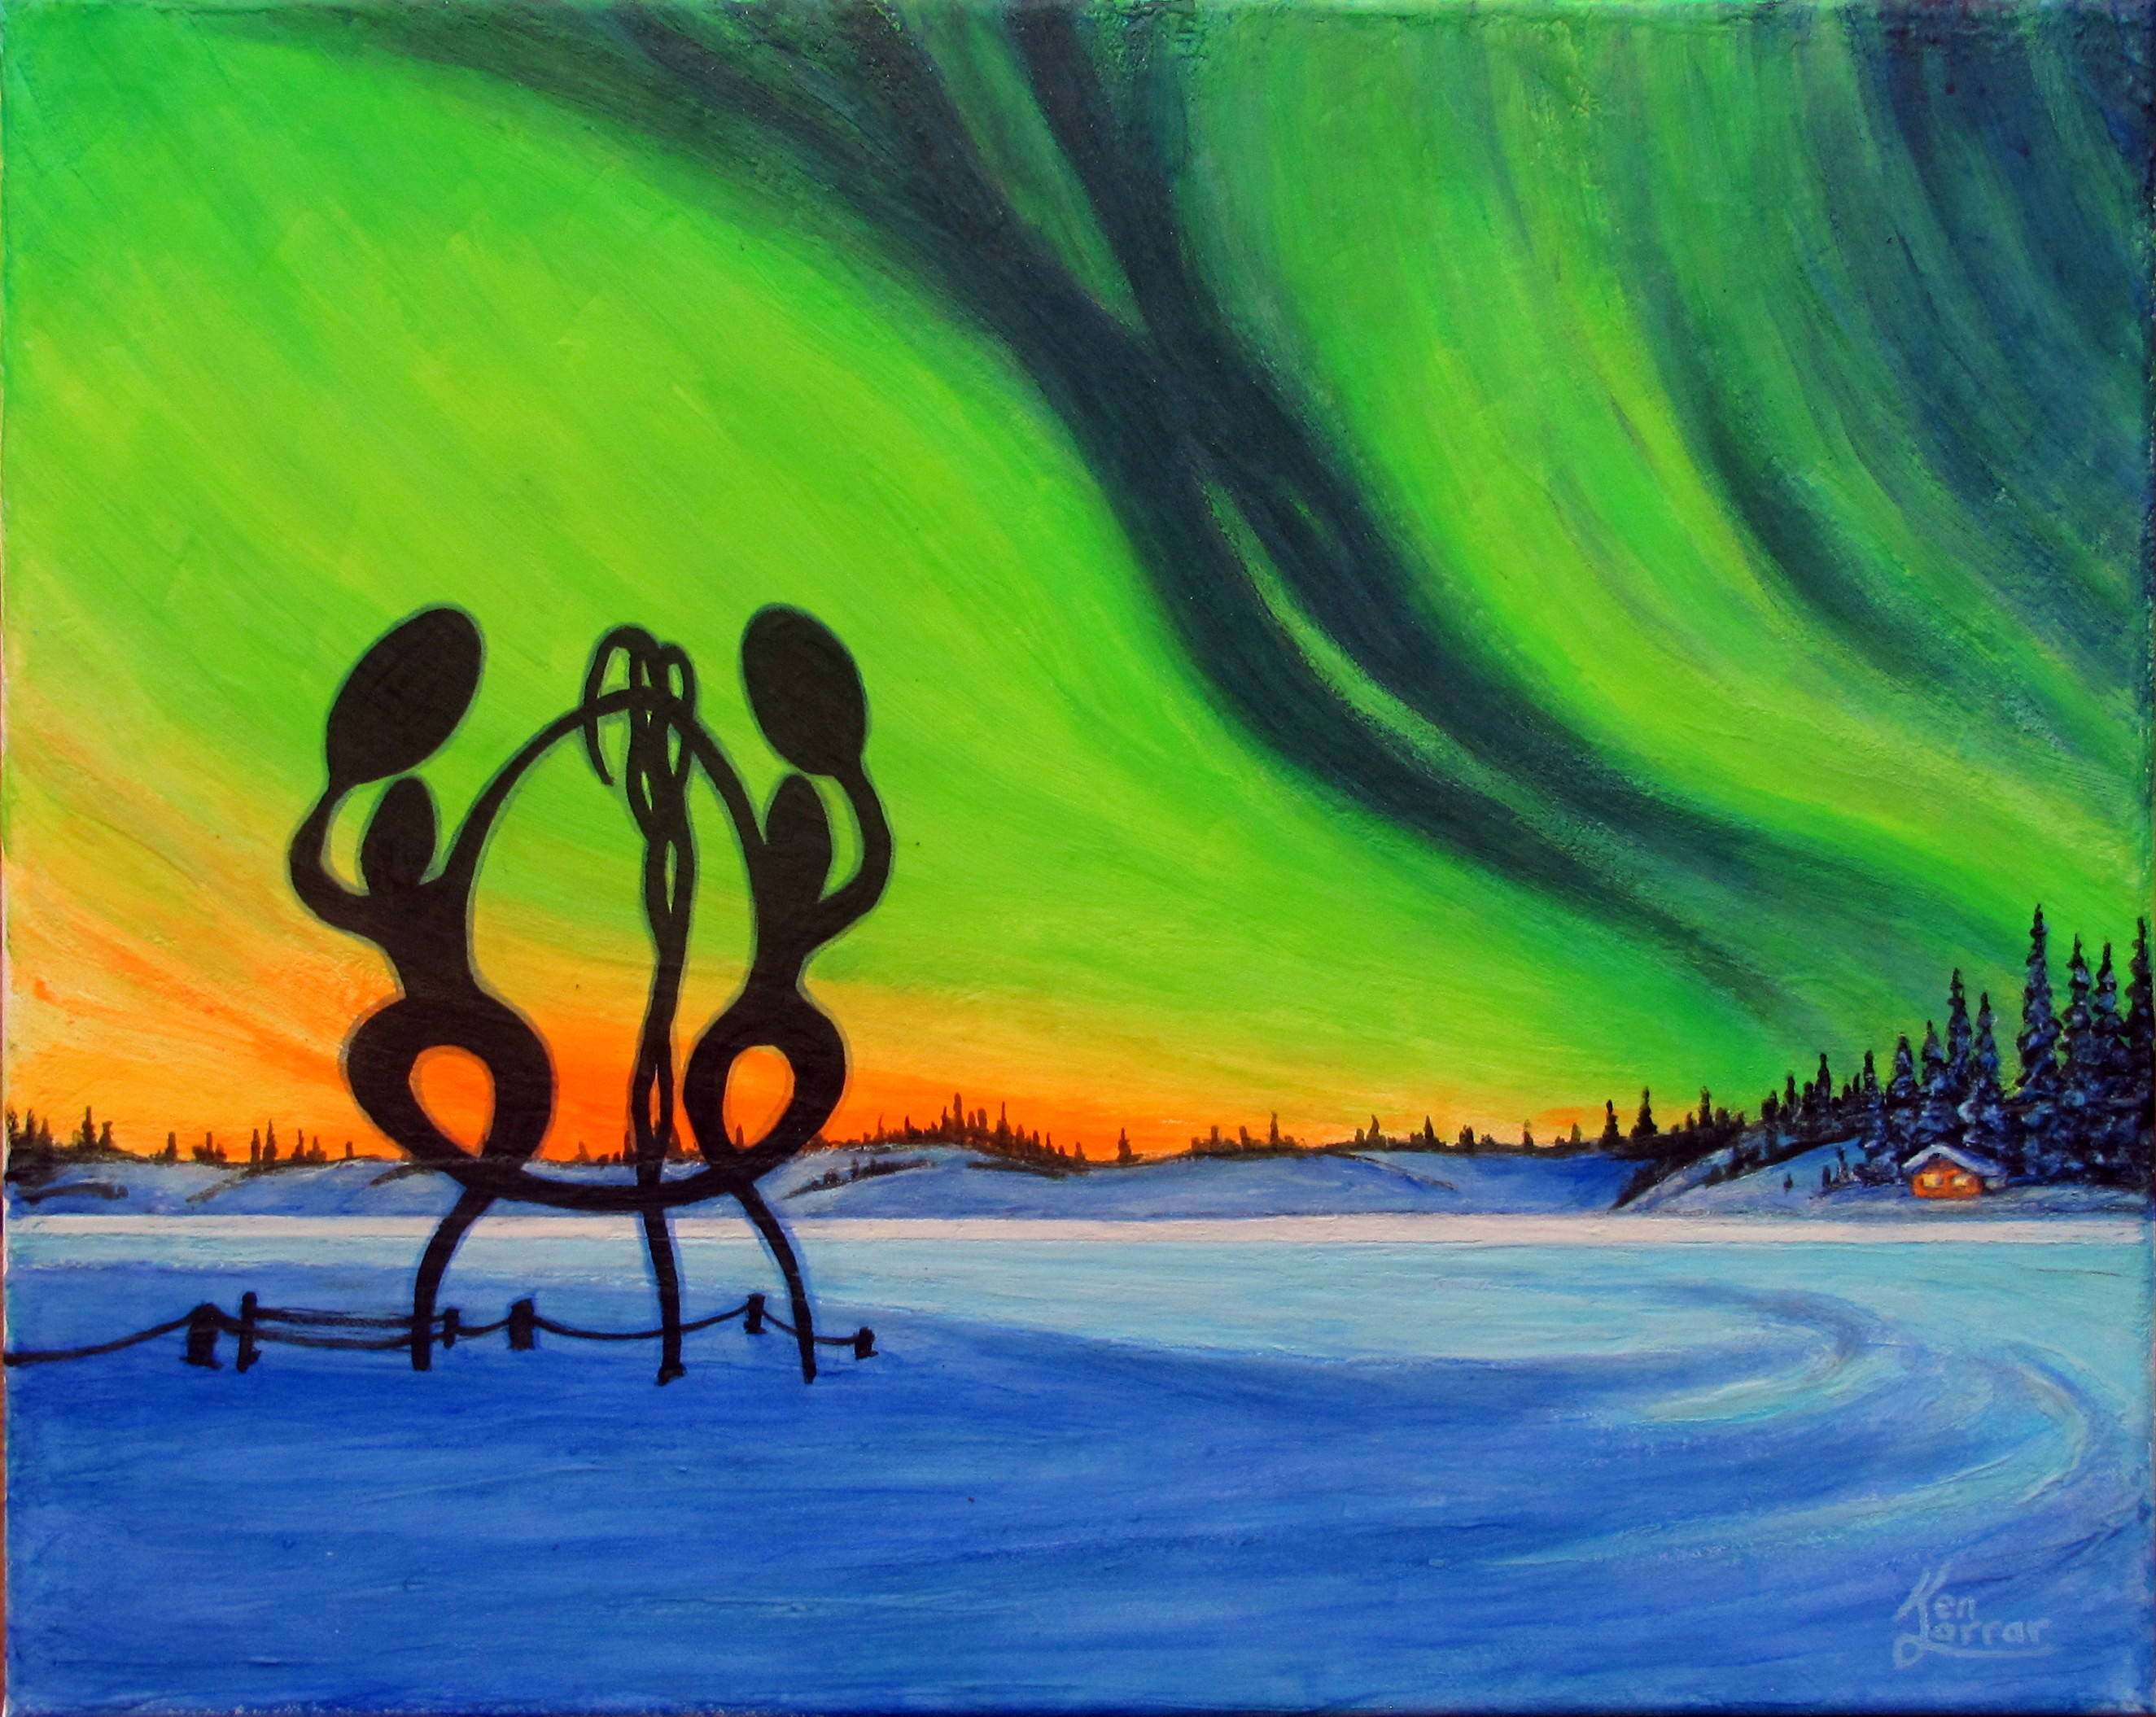 United In Celebration - a commissioned painting Yellowknife NWT